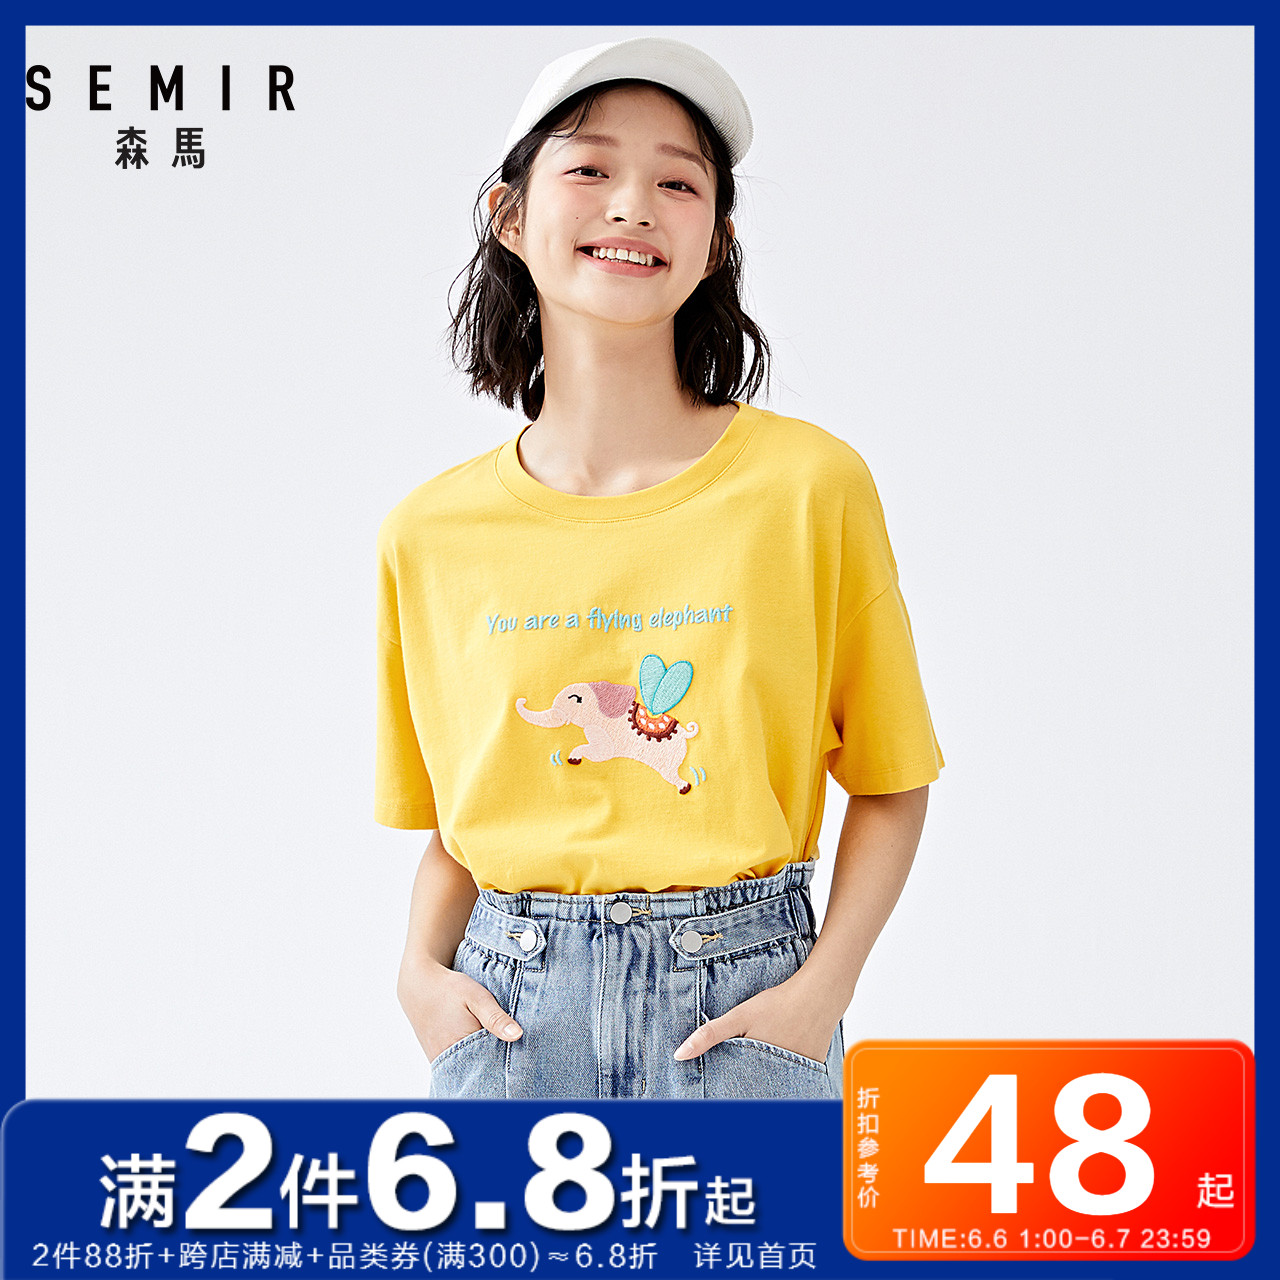 Senma short sleeve T-shirt women 2020 new Korean loose round neck embroidery top pure cotton ins fashion bottoming shirt summer